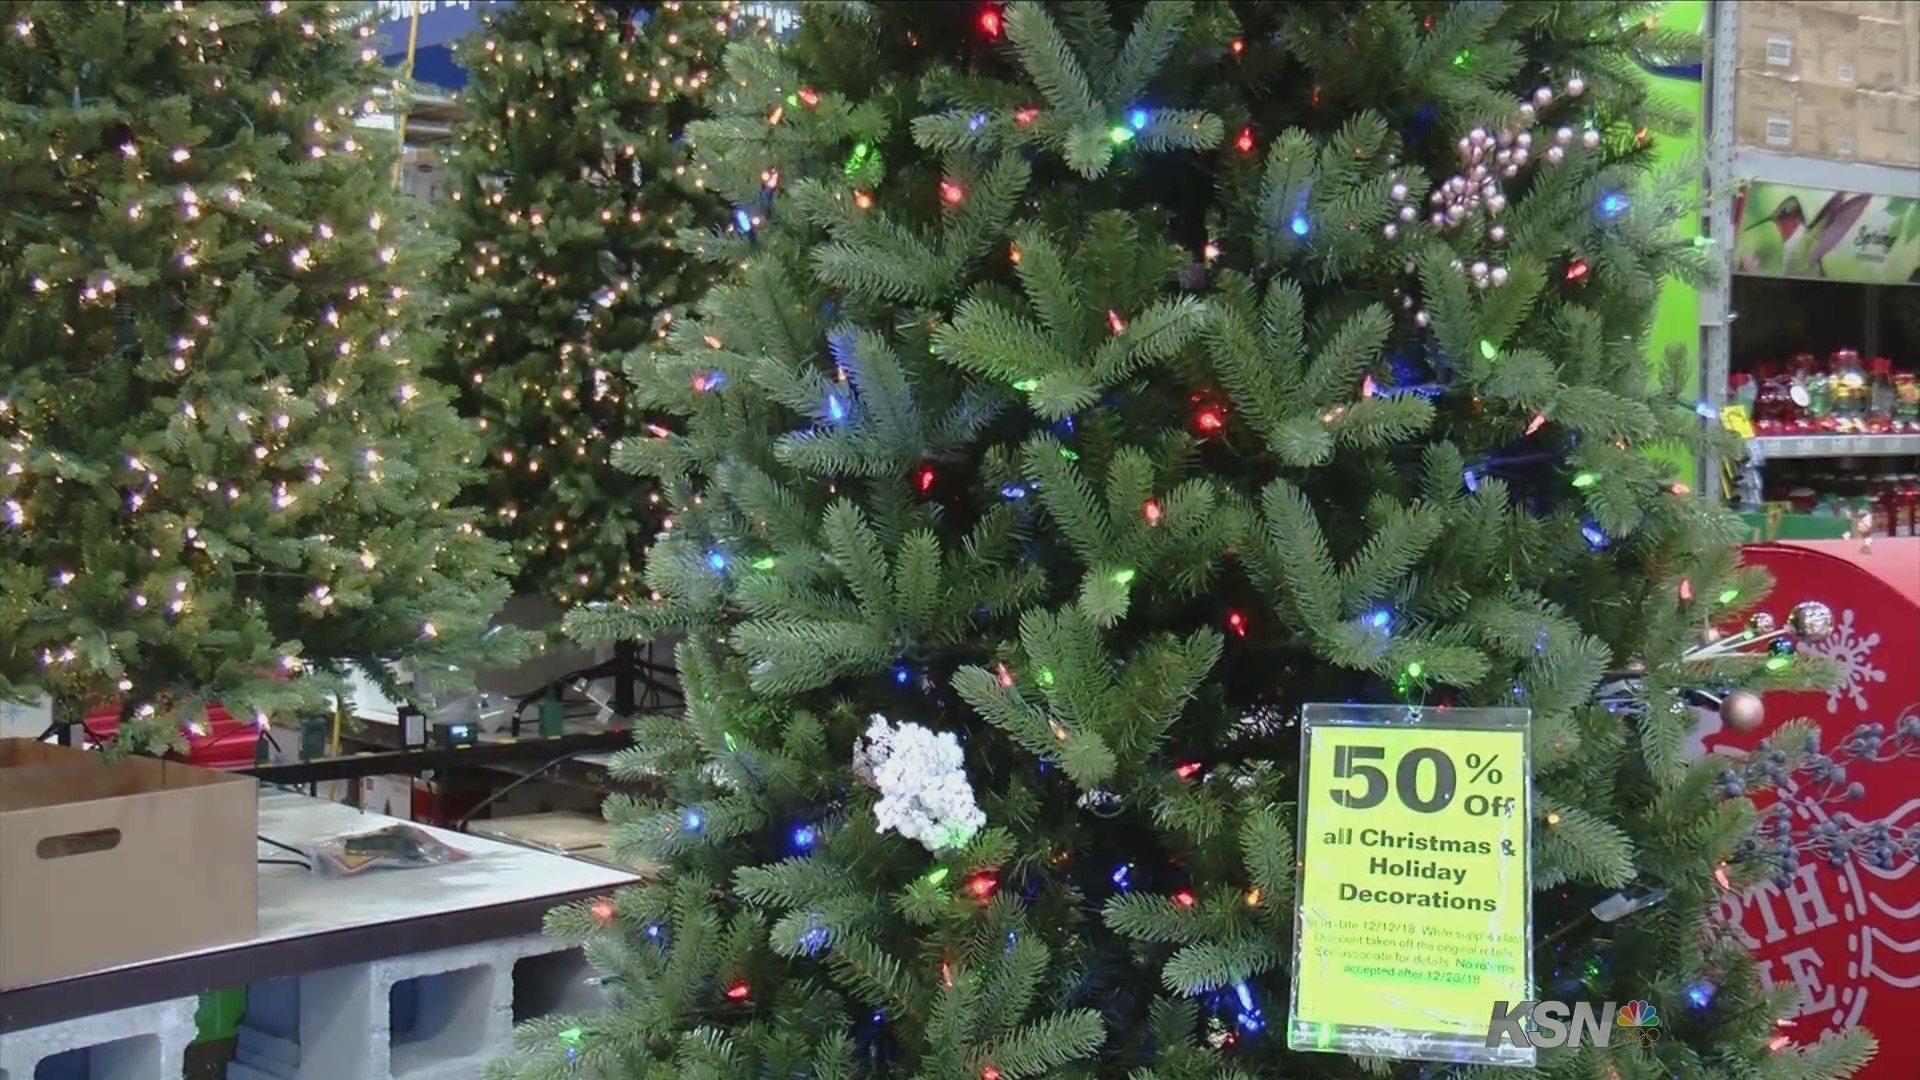 Lowes Christmas Decorations.Lowe S Will Take Your Old Christmas Lights